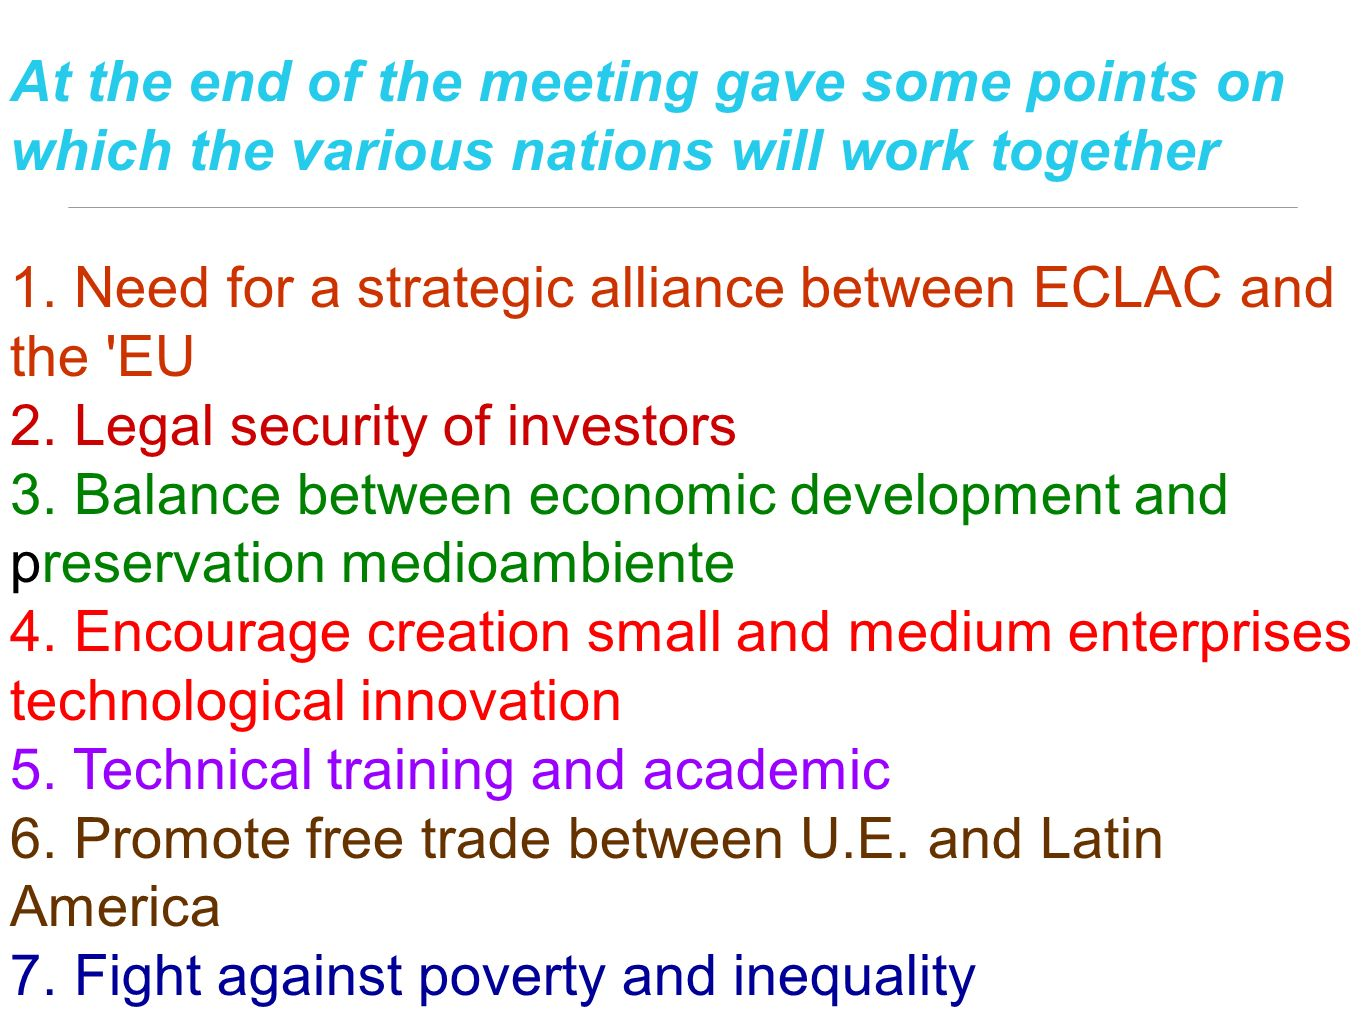 At the end of the meeting gave some points on which the various nations will work together